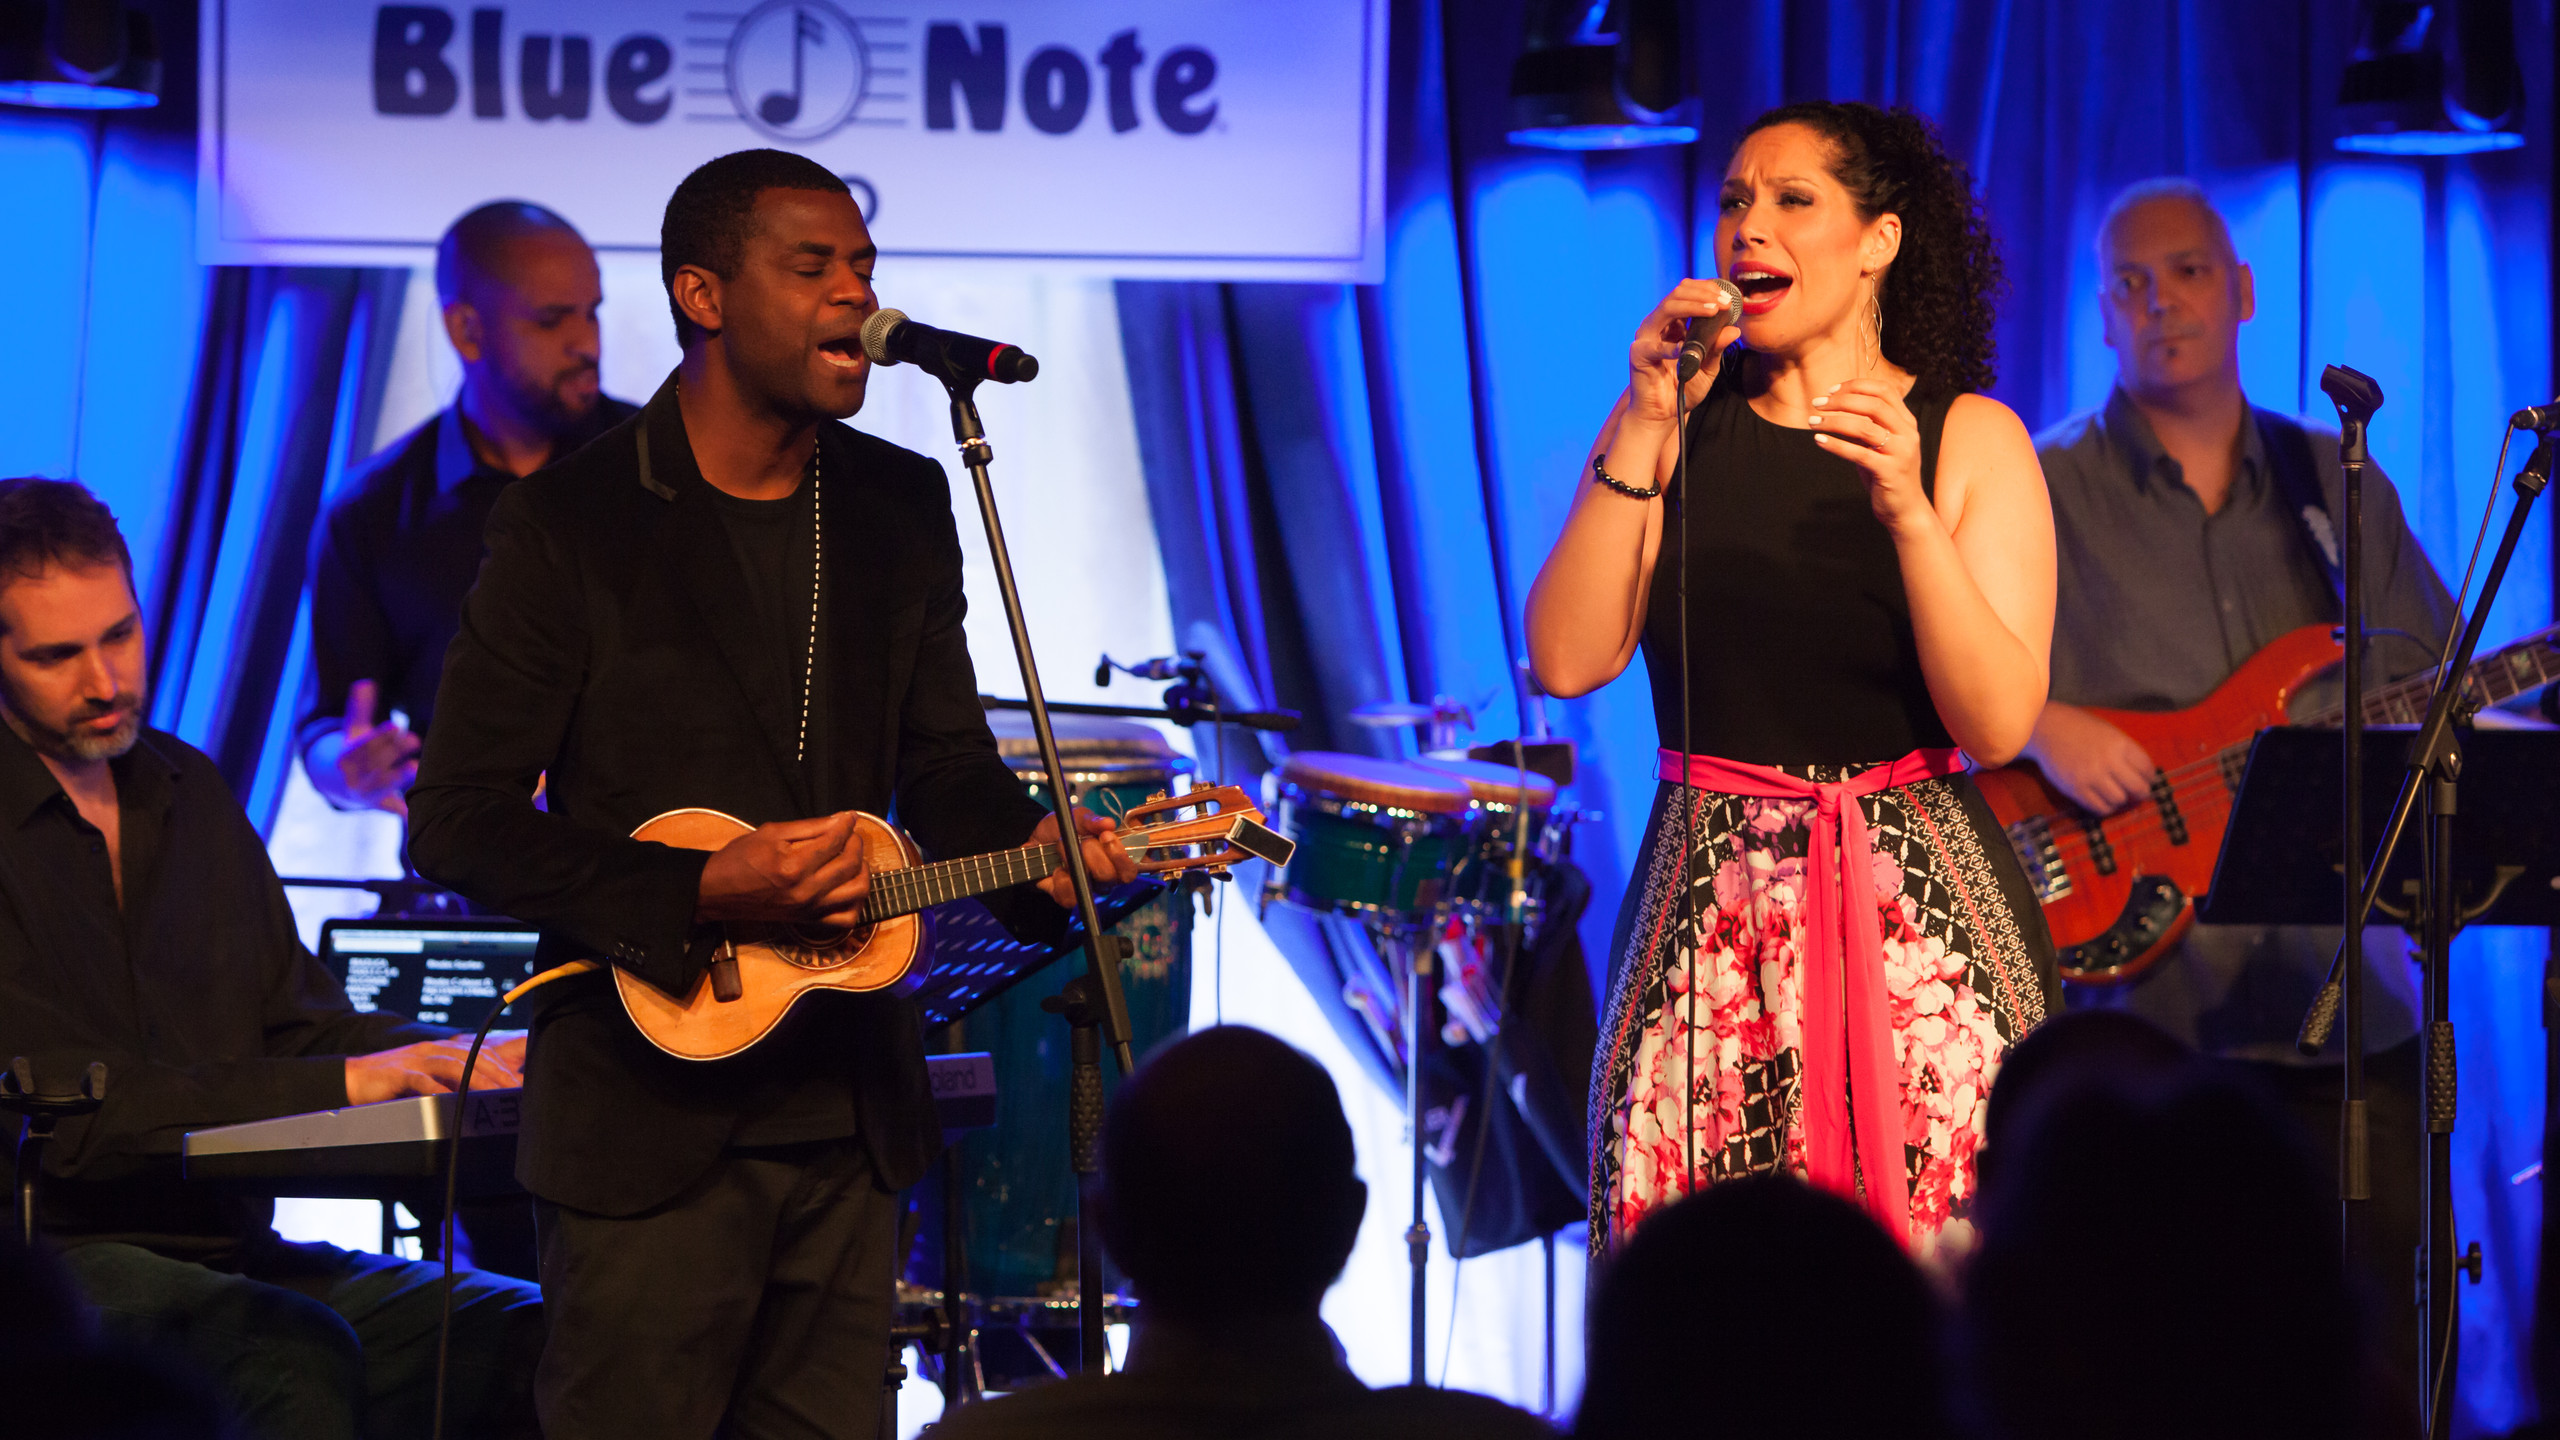 Alexandra and Pretinho at Blue Note